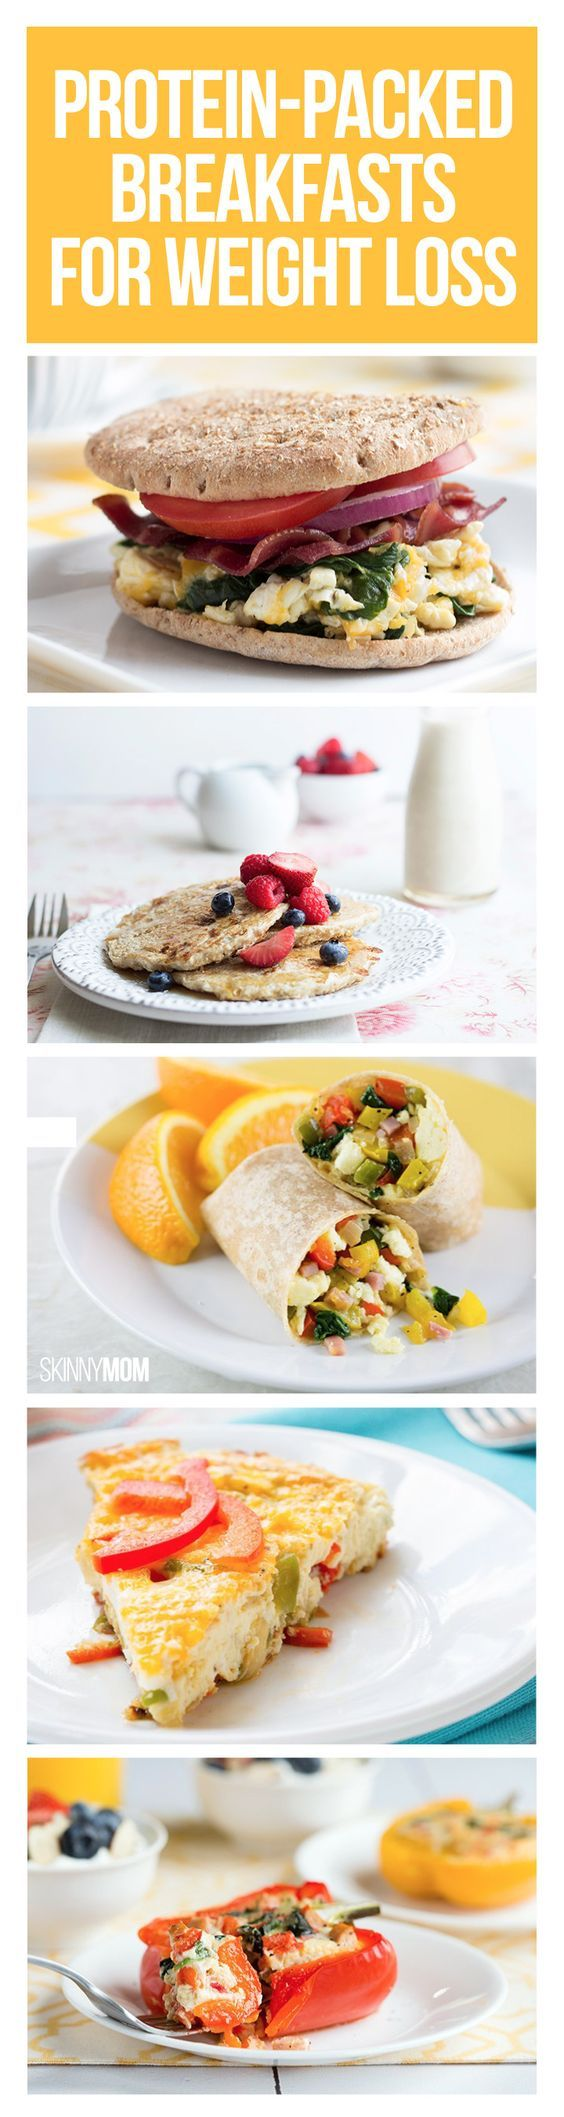 Your breakfast should pack a protein punch!